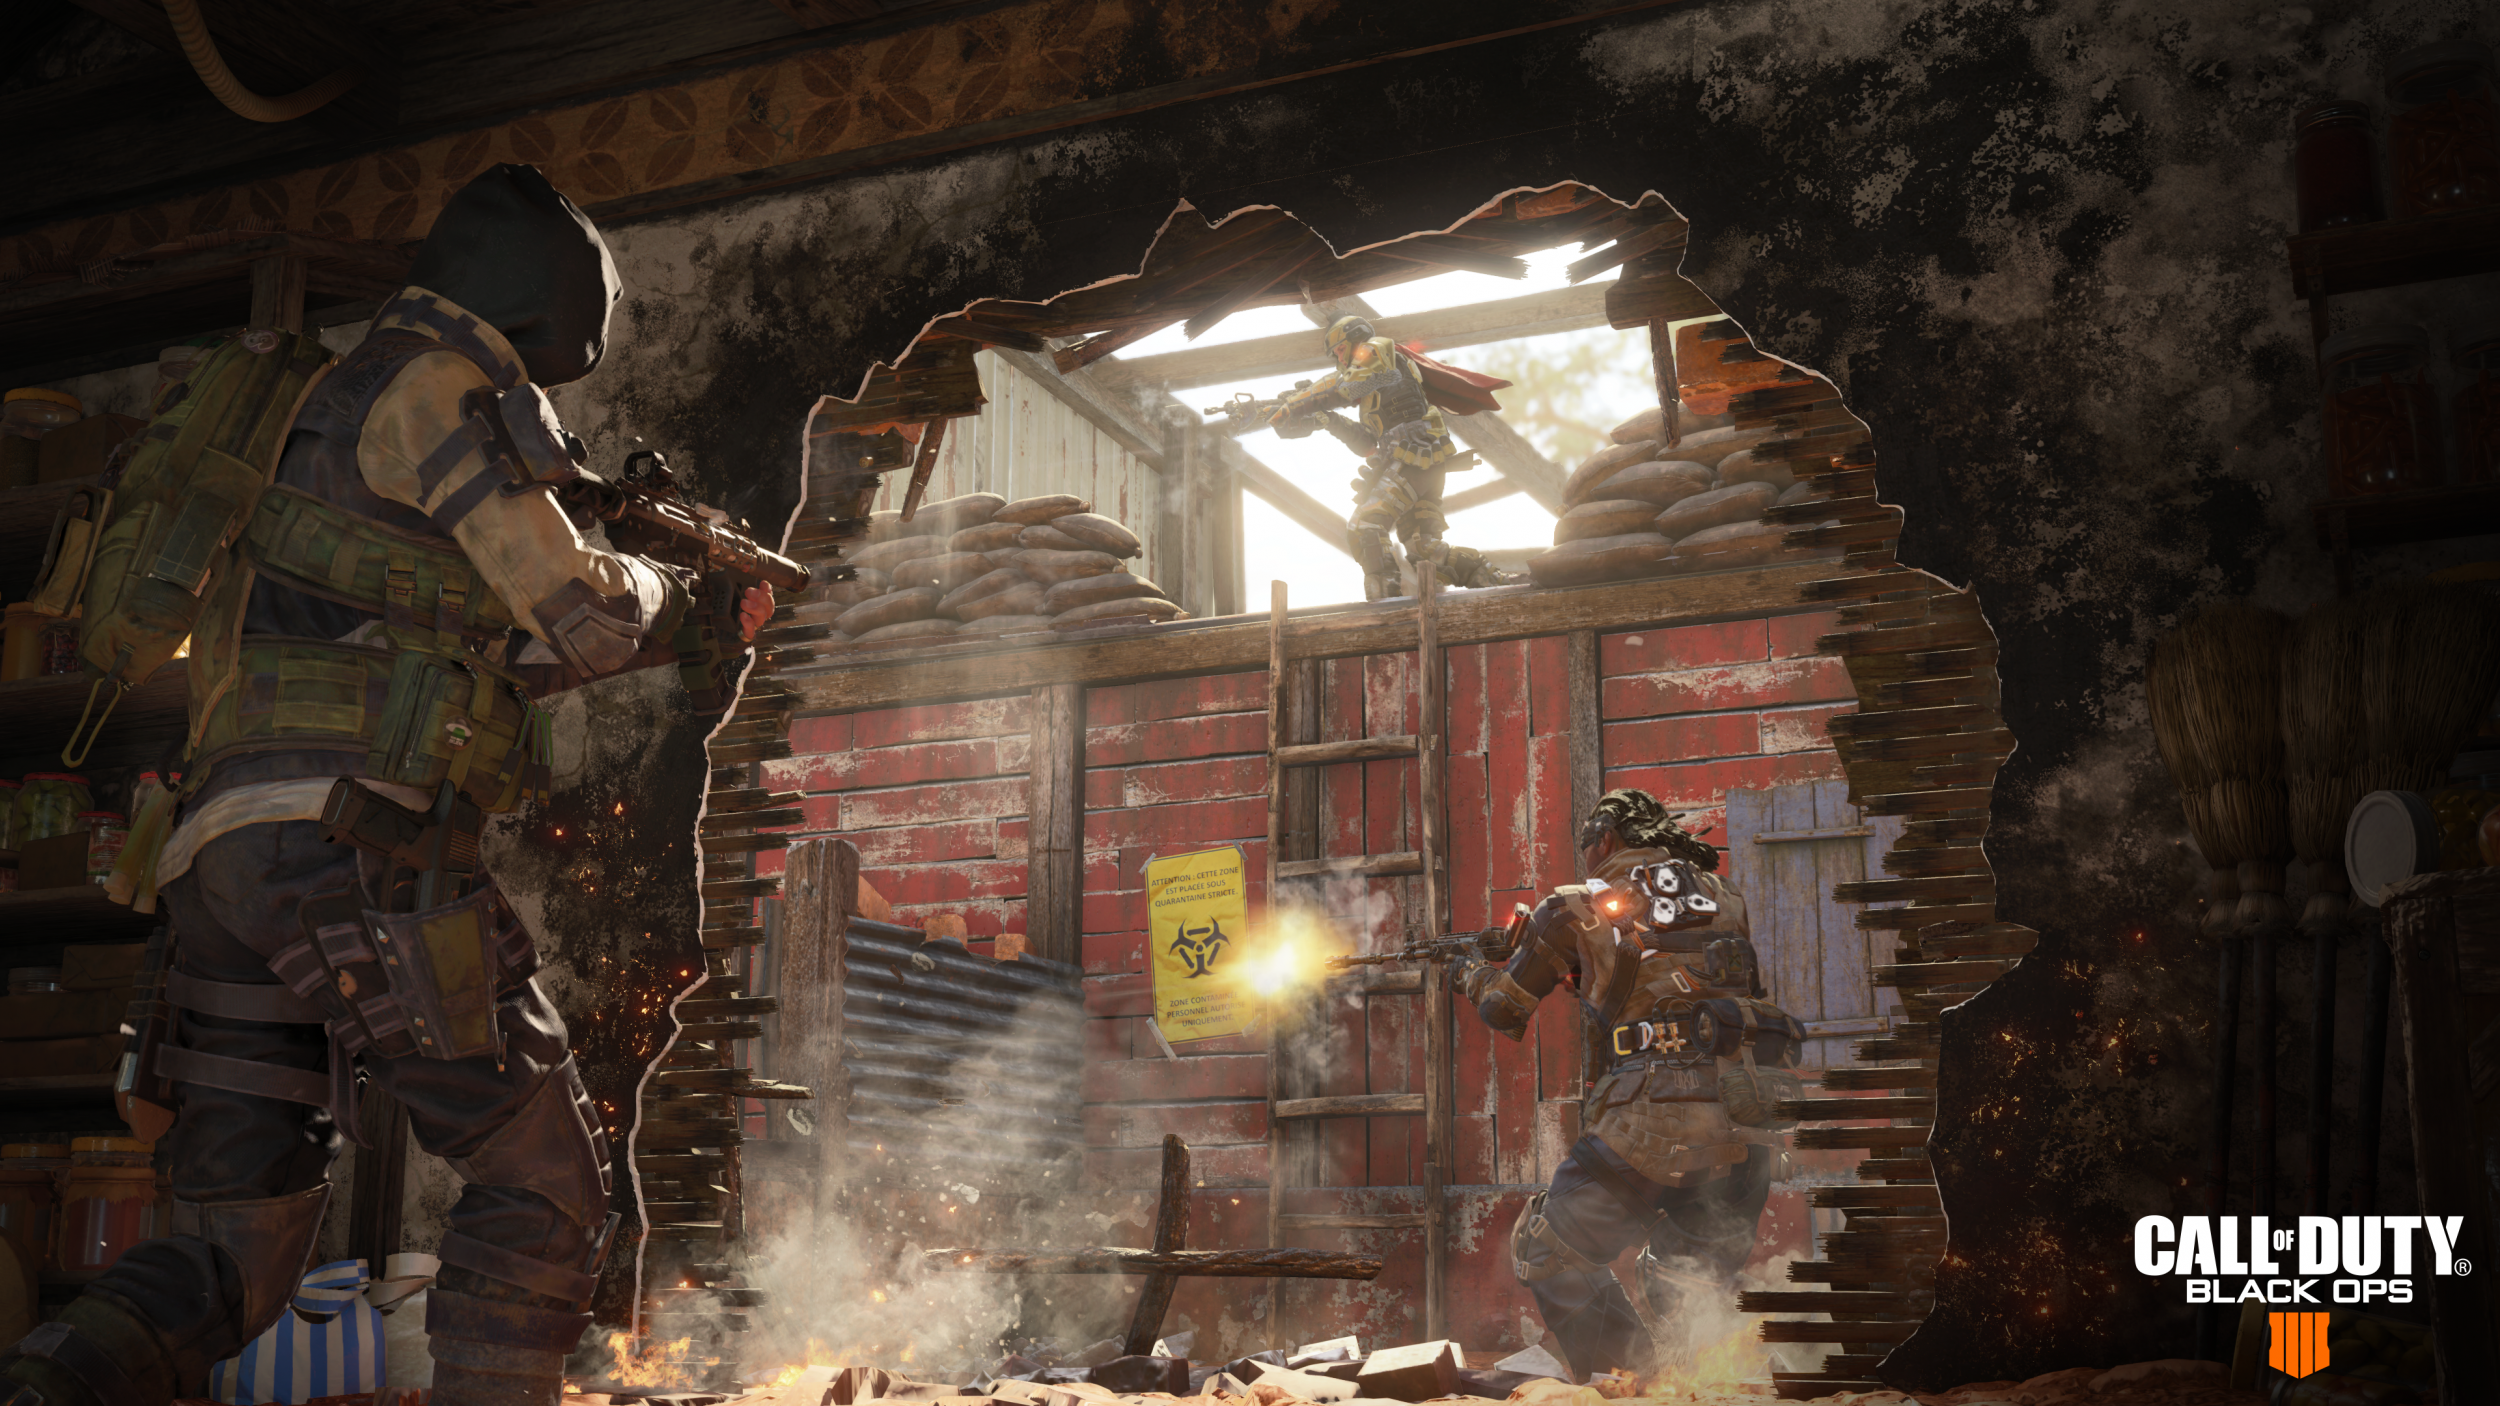 Call of Duty: Black Ops 4' Update 1 11 Adds Gauntlets, New